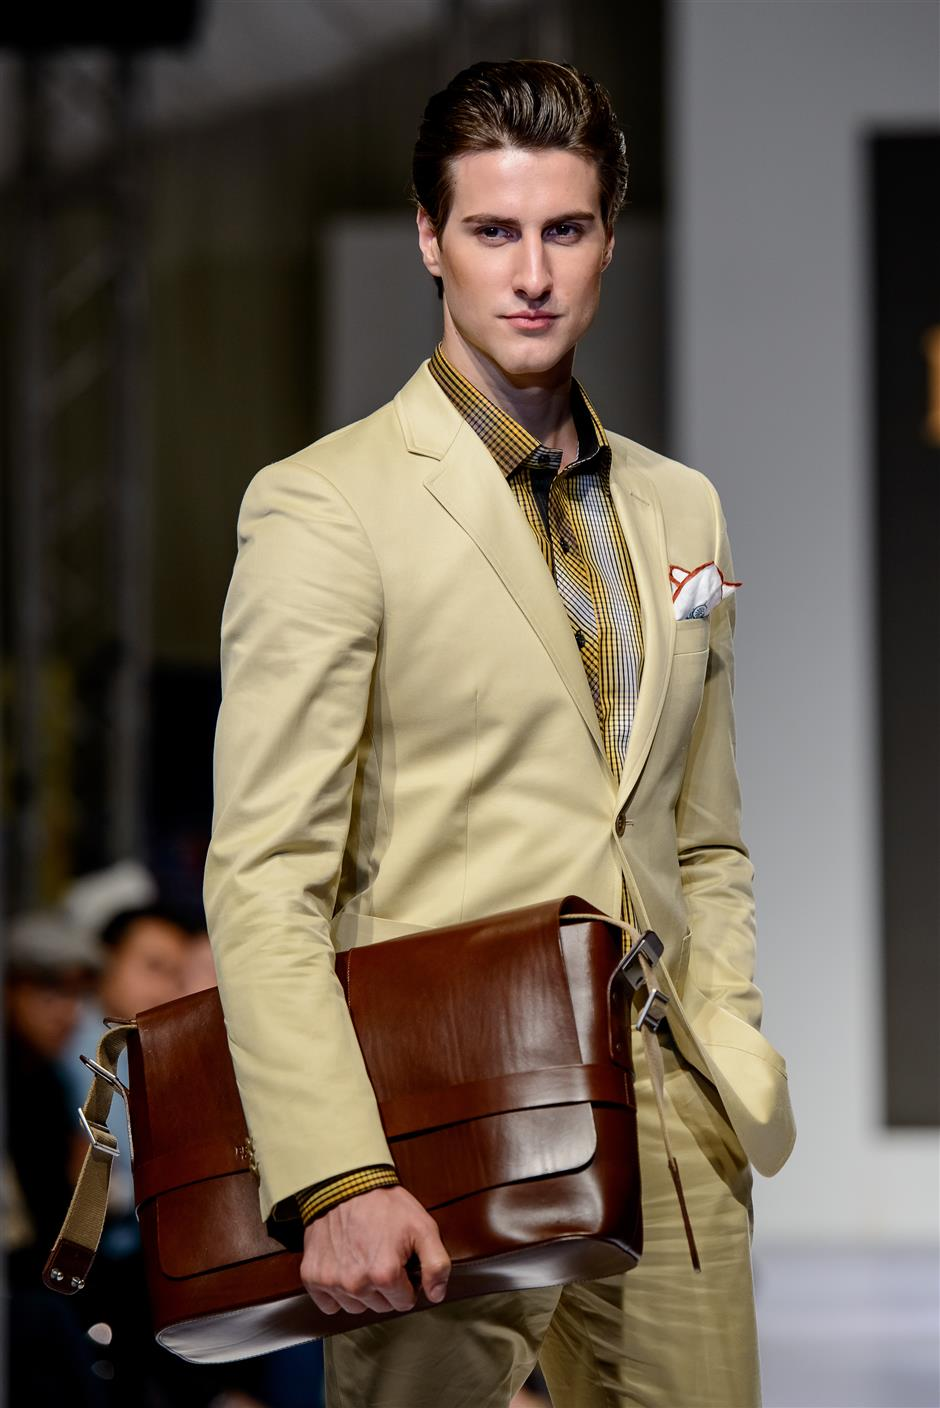 Every modern gent should at least have a few signature suits in his wardrobe.